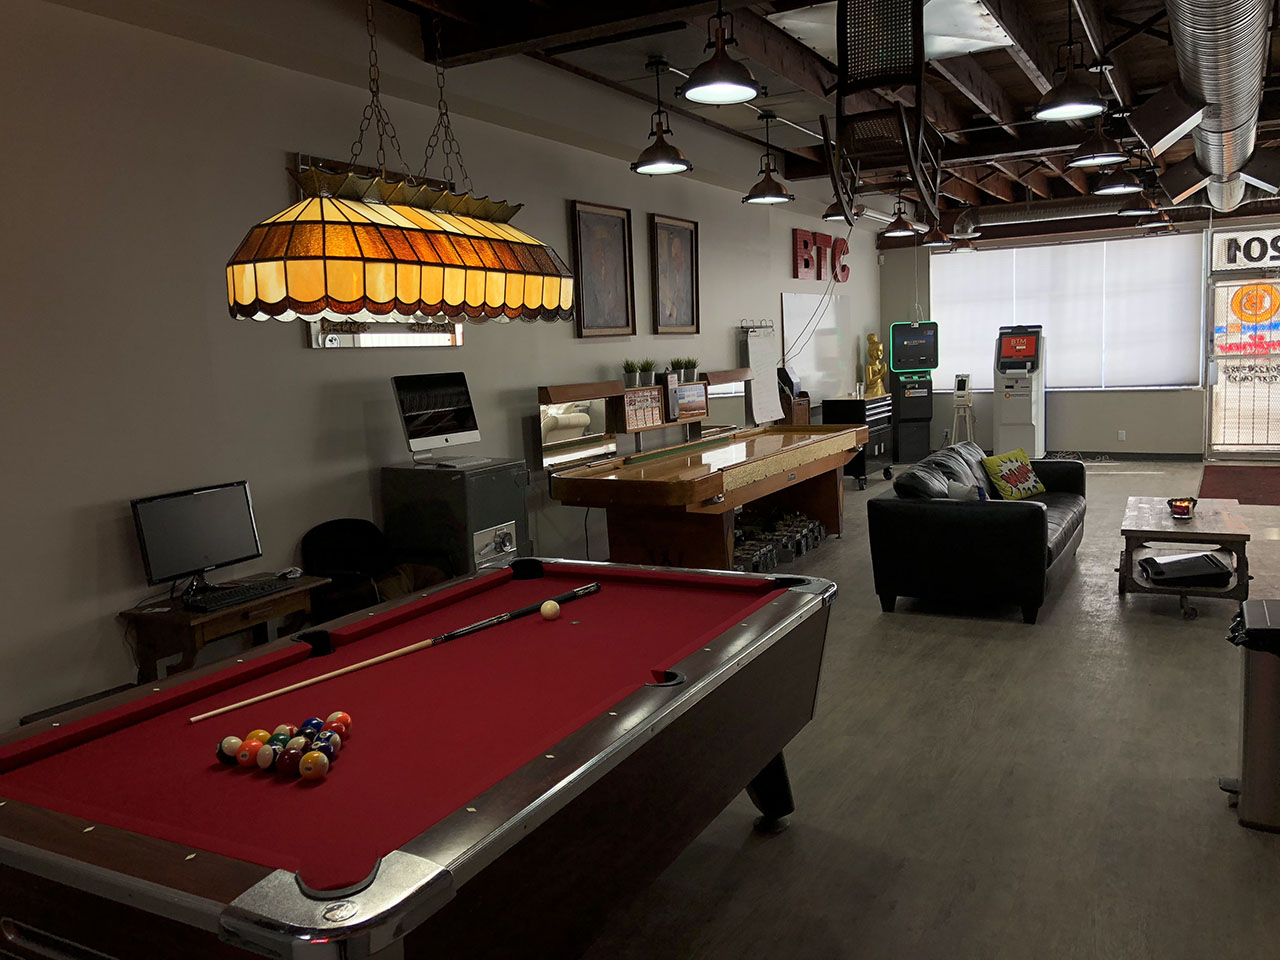 Our CryptoNutz Meetup room!